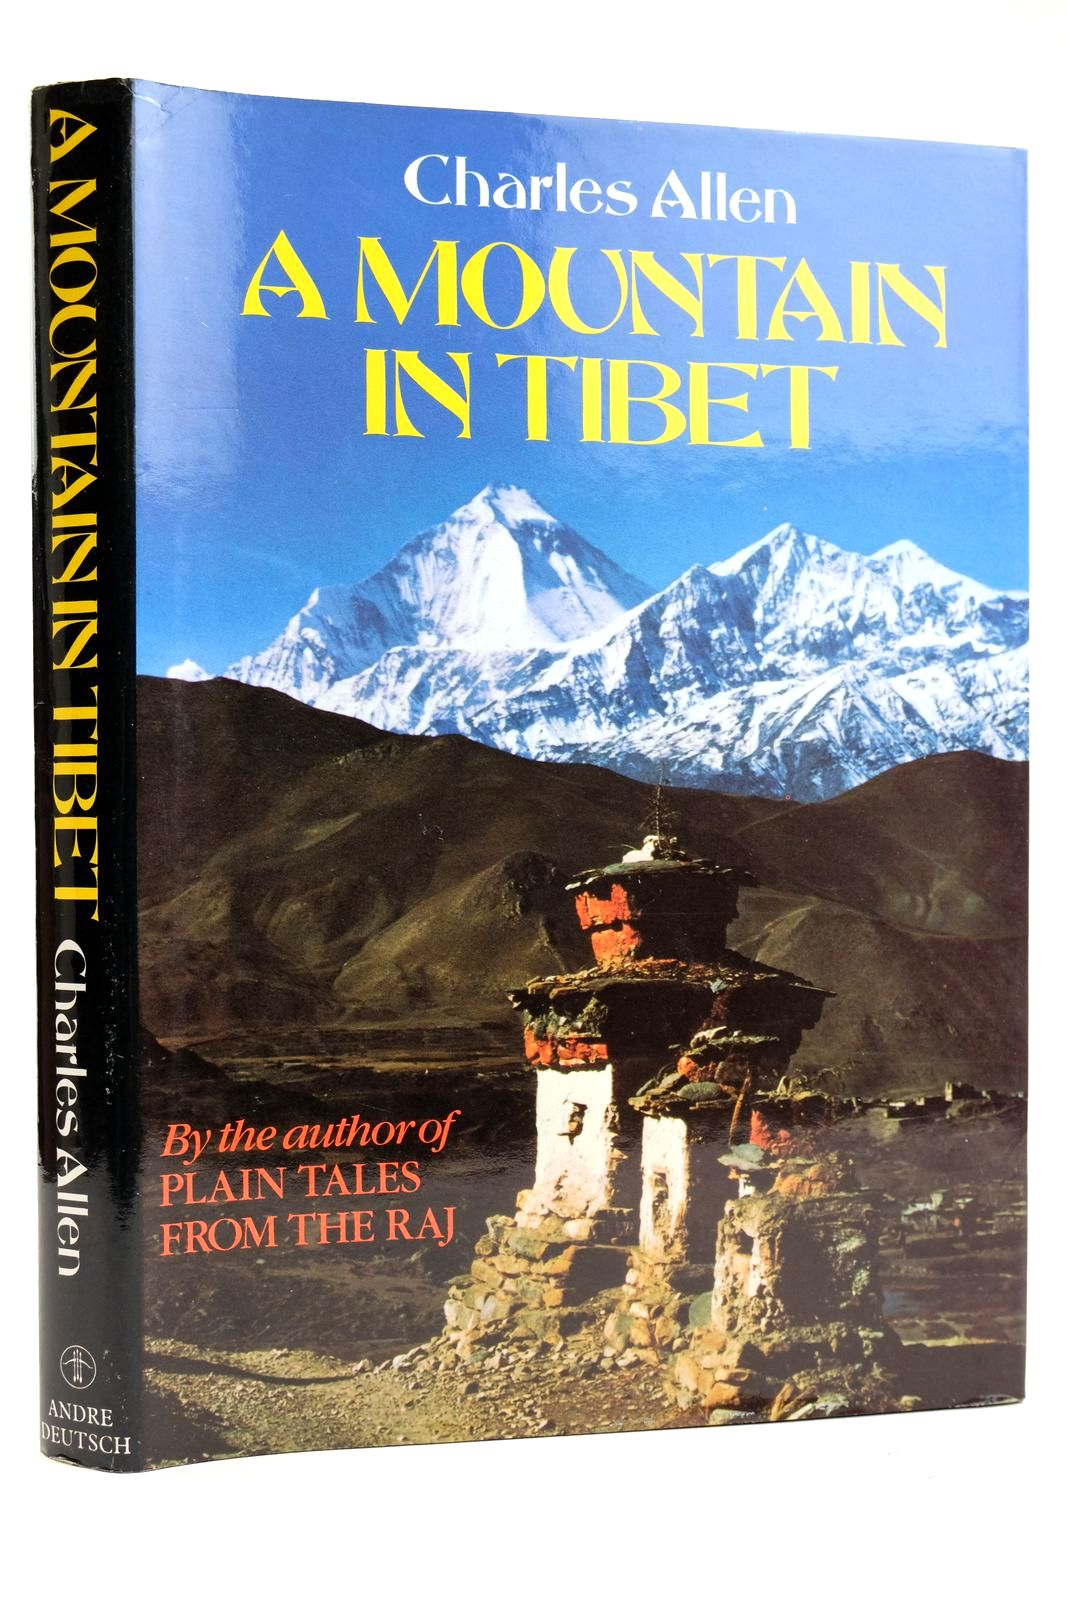 Photo of A MOUNTAIN IN TIBET written by Allen, Charles published by Andre Deutsch (STOCK CODE: 2132474)  for sale by Stella & Rose's Books